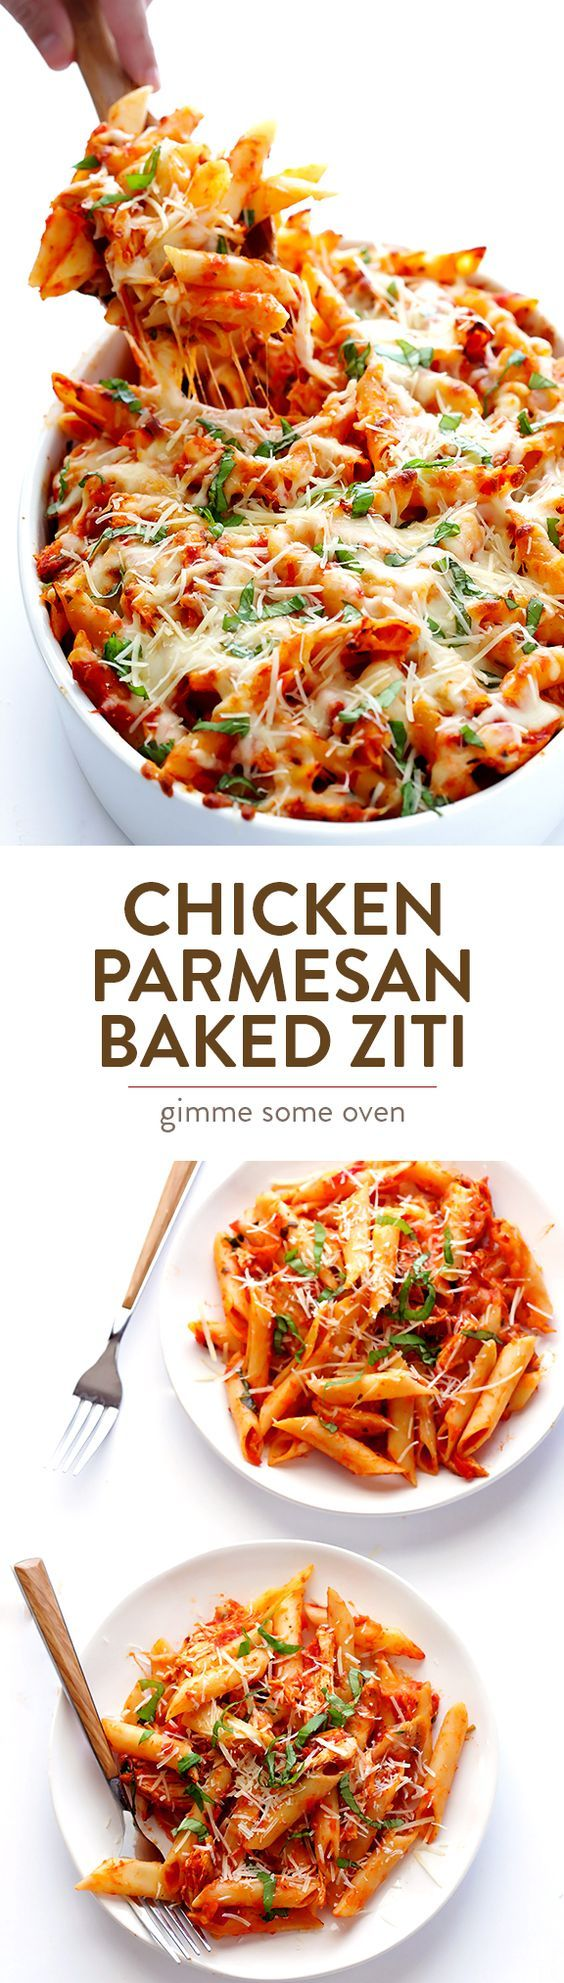 Chicken Parmesan Baked ZIti -- all you need are 6 easy ingredients to make this delicious, crowd-pleasing meal!